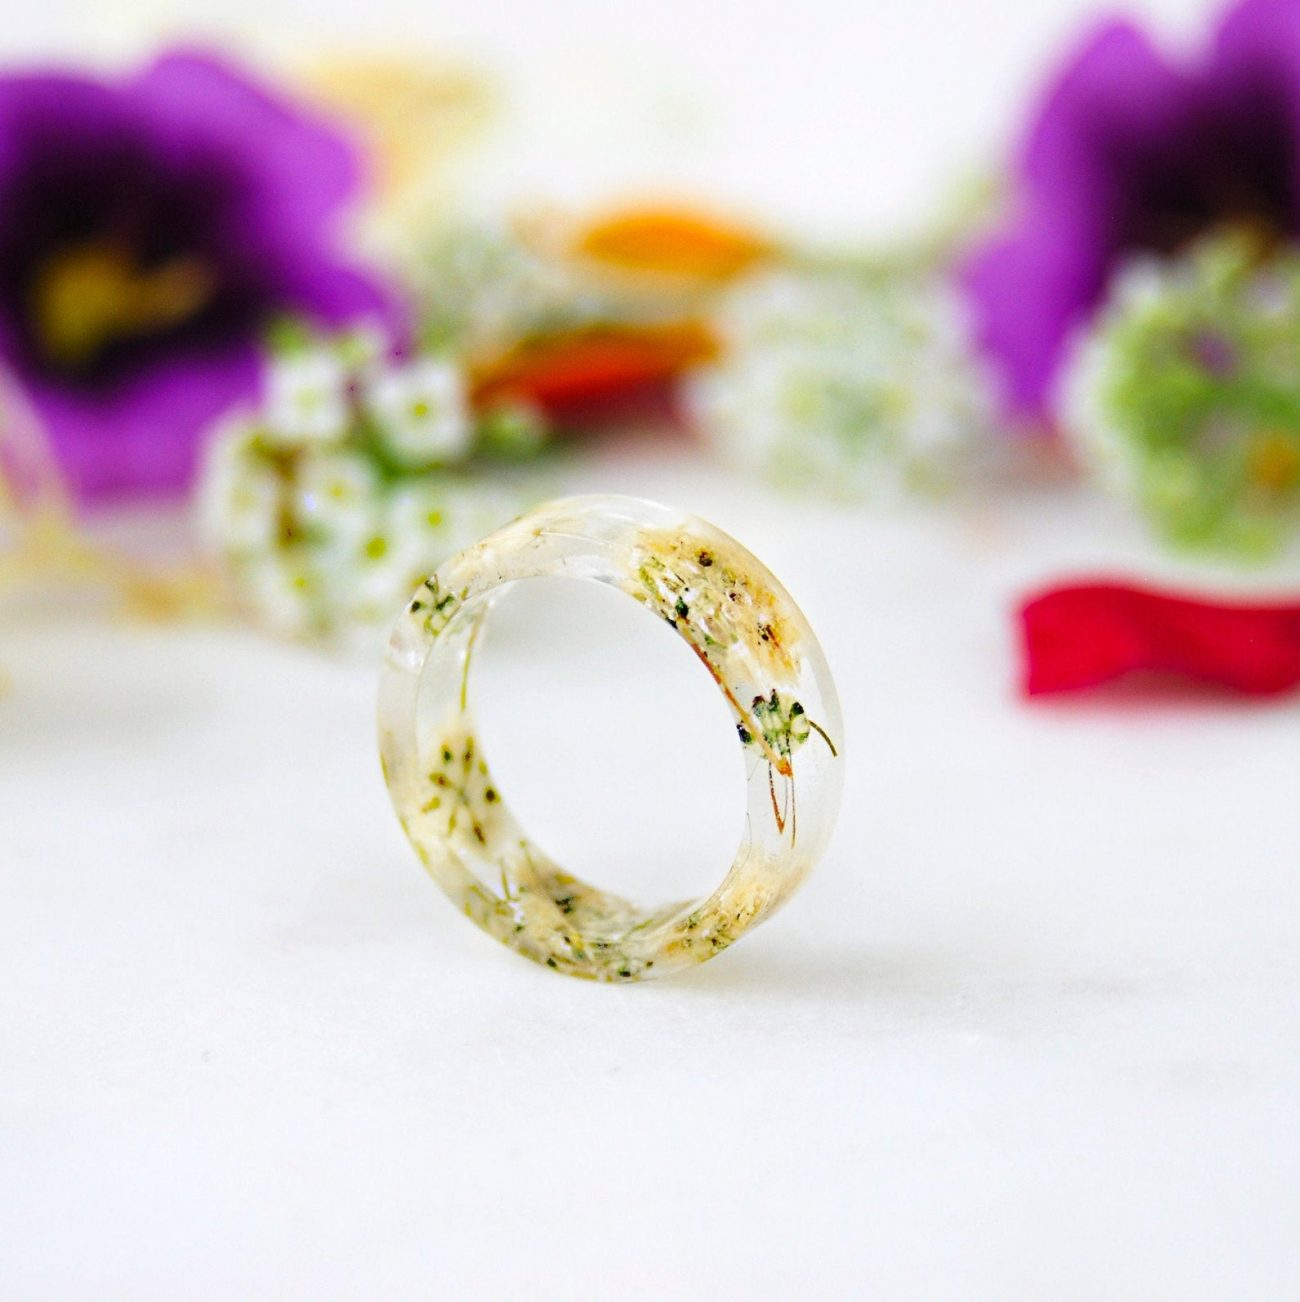 Real Flower Pressed Resin Rings